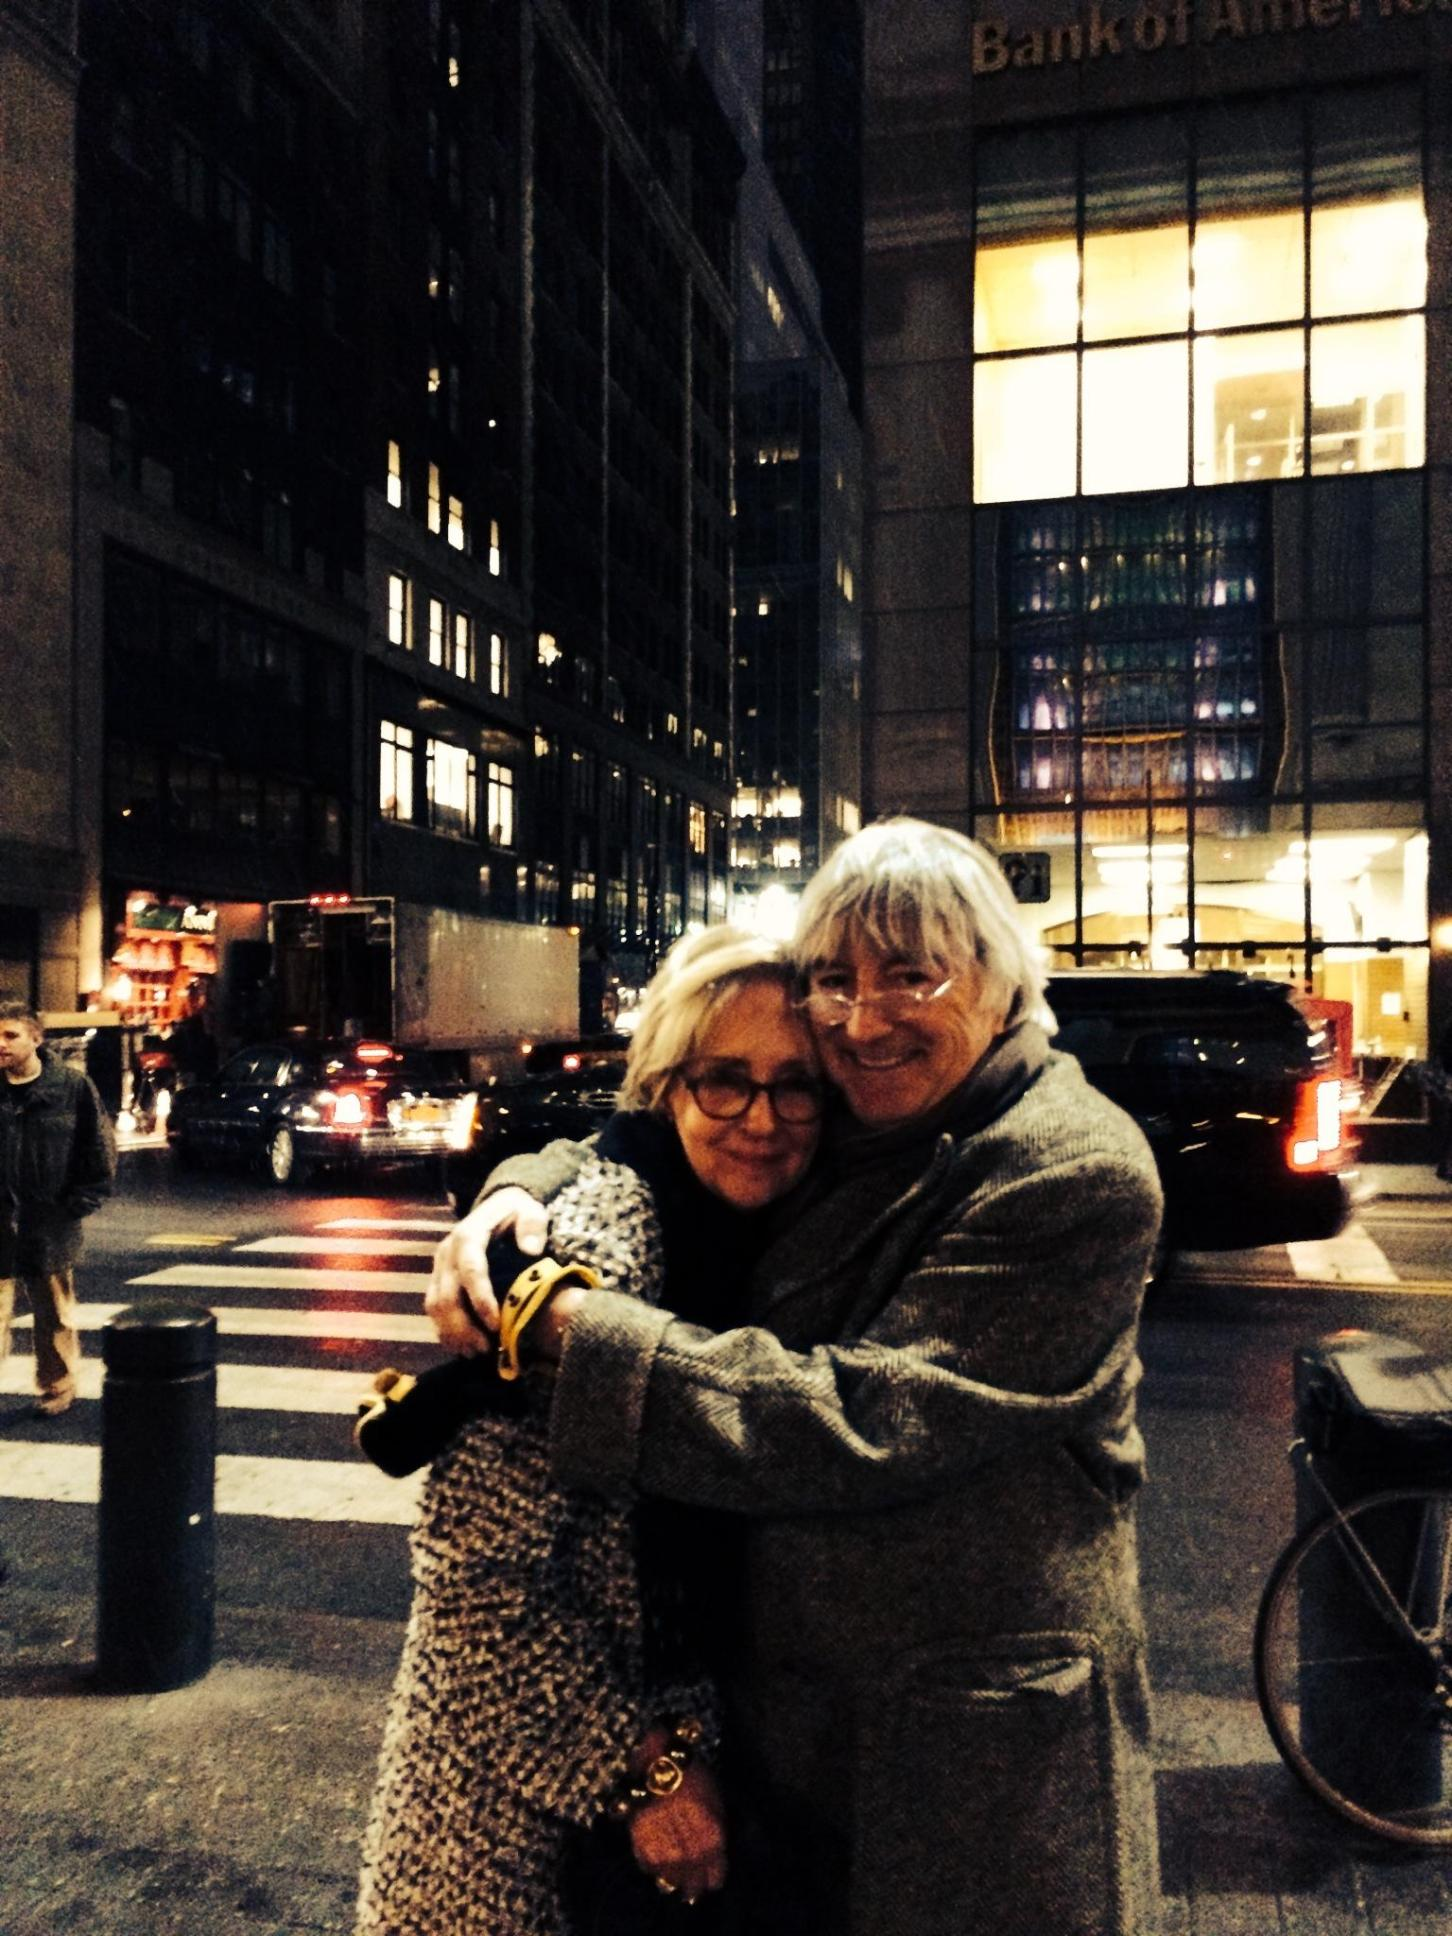 Mom and John 11.23.13 snow in NYC